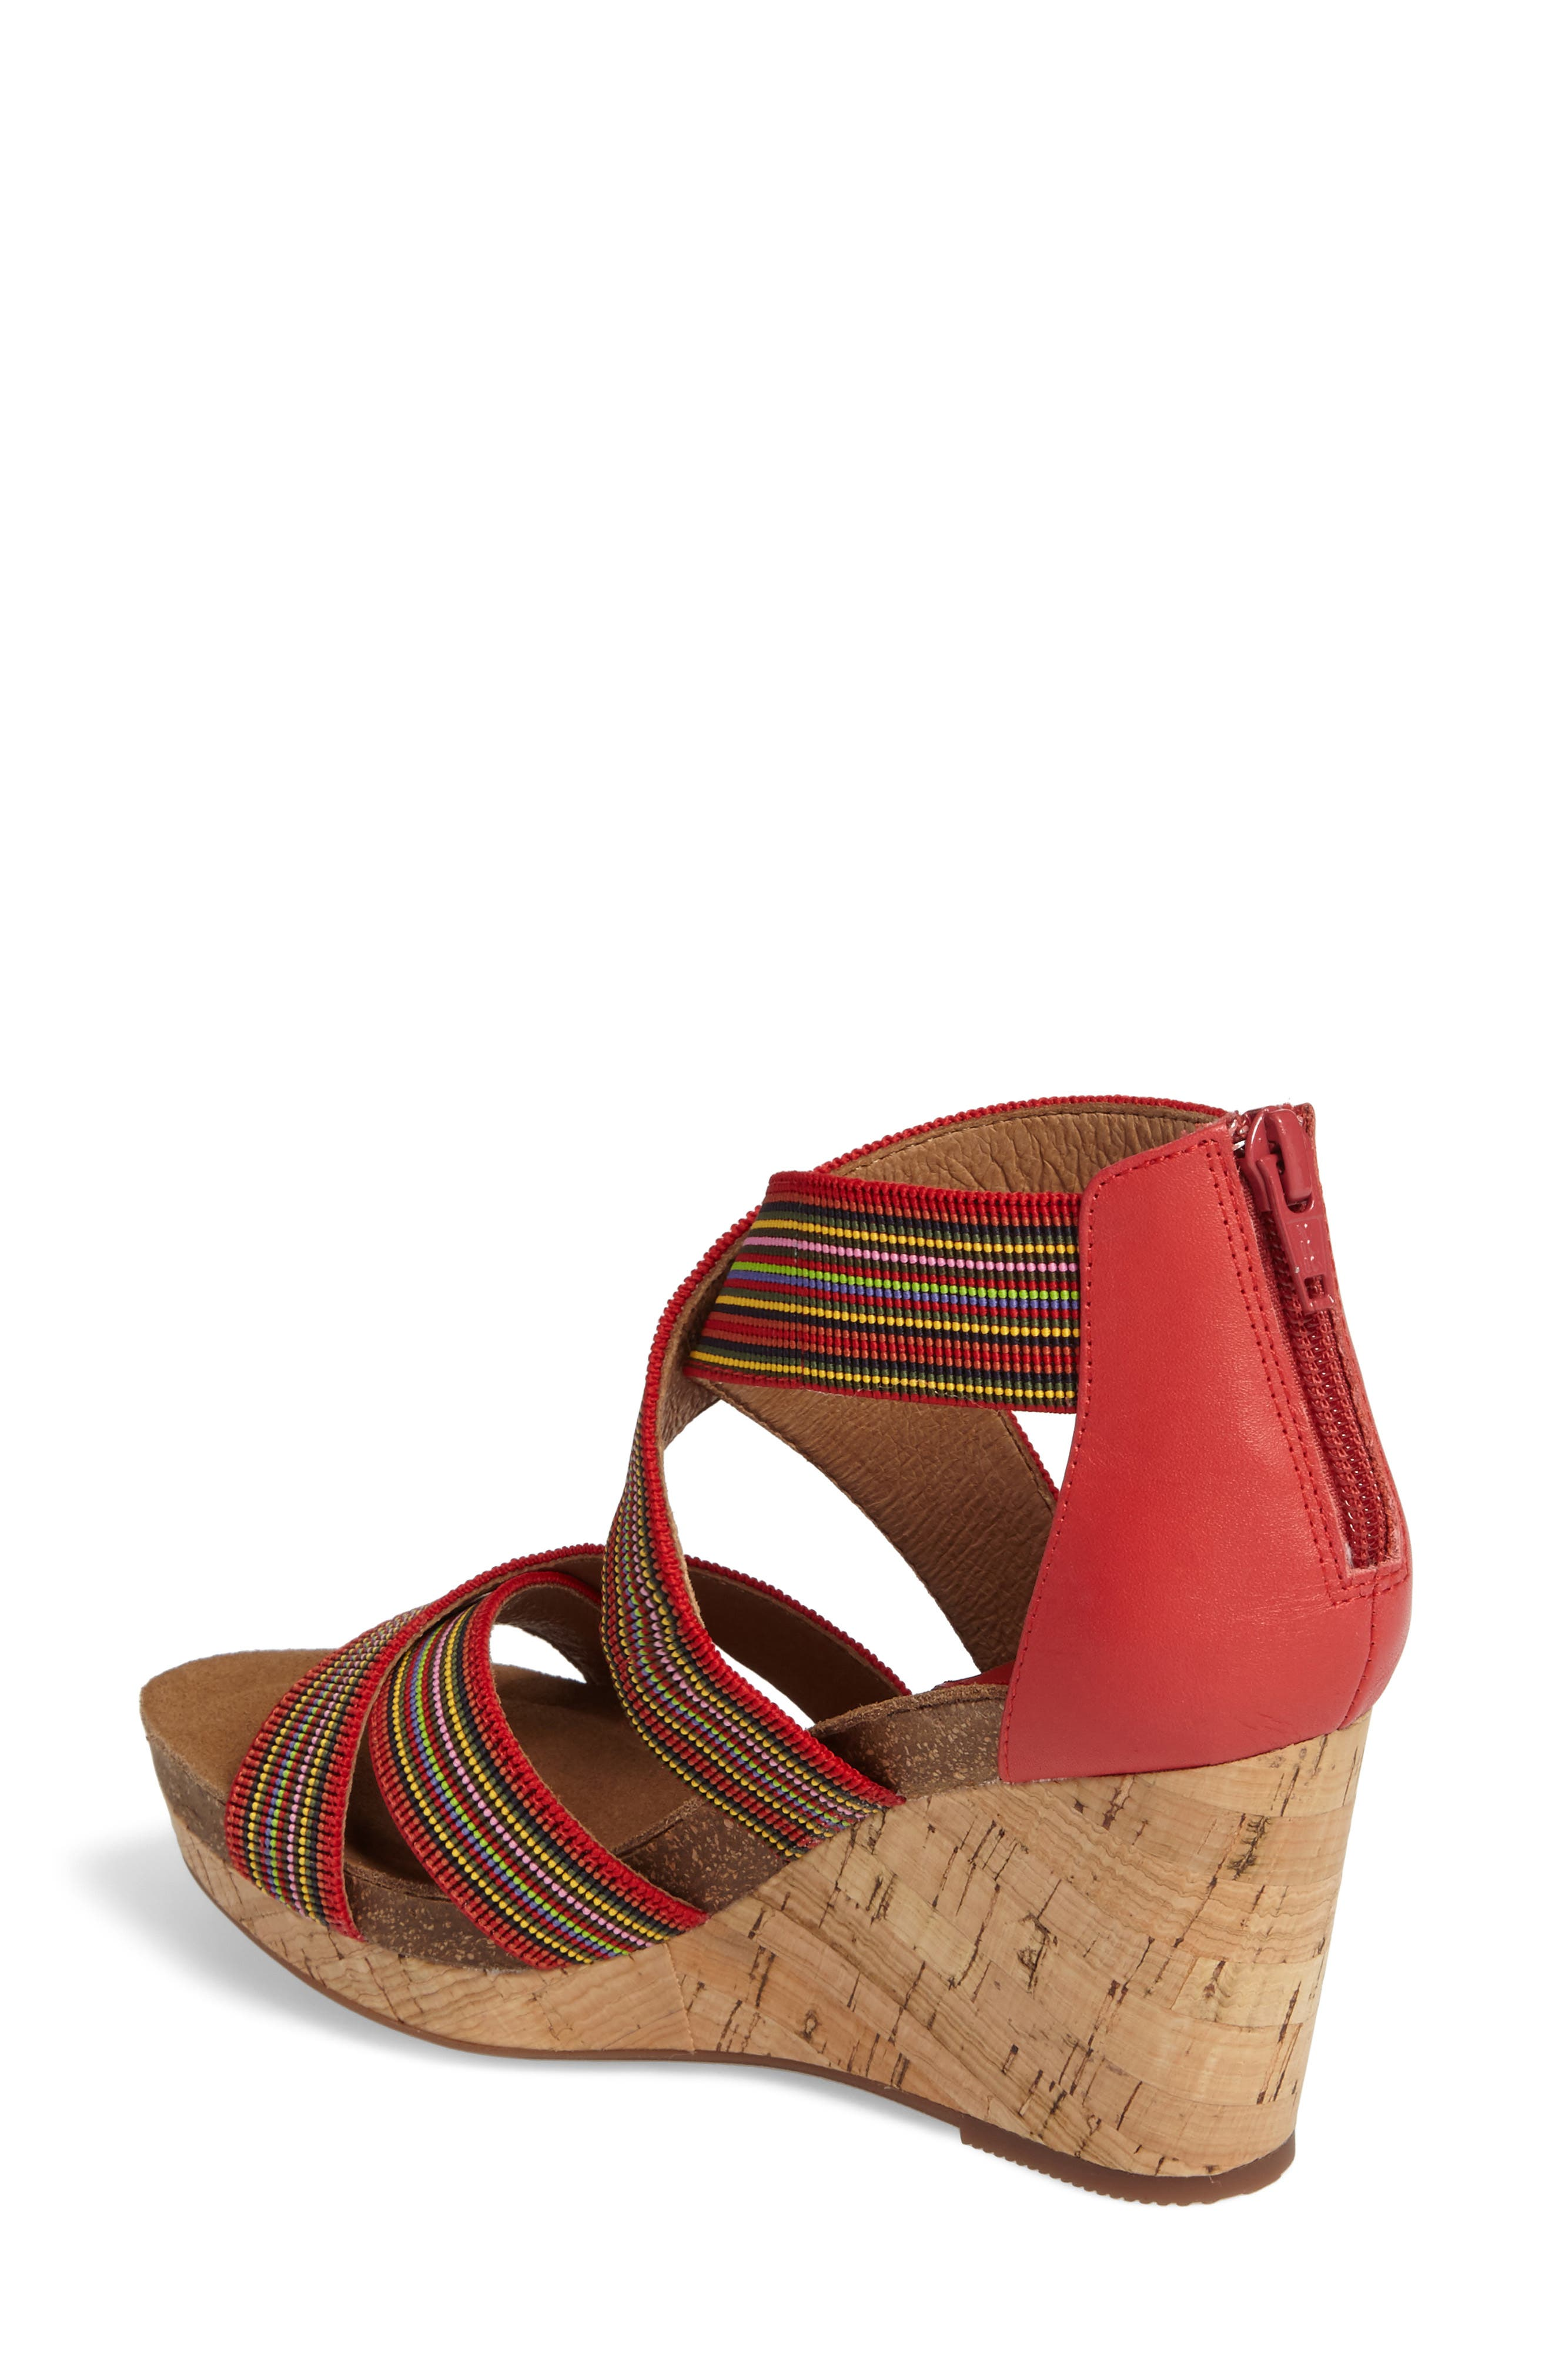 Cary Cross Strap Wedge Sandal,                             Alternate thumbnail 6, color,